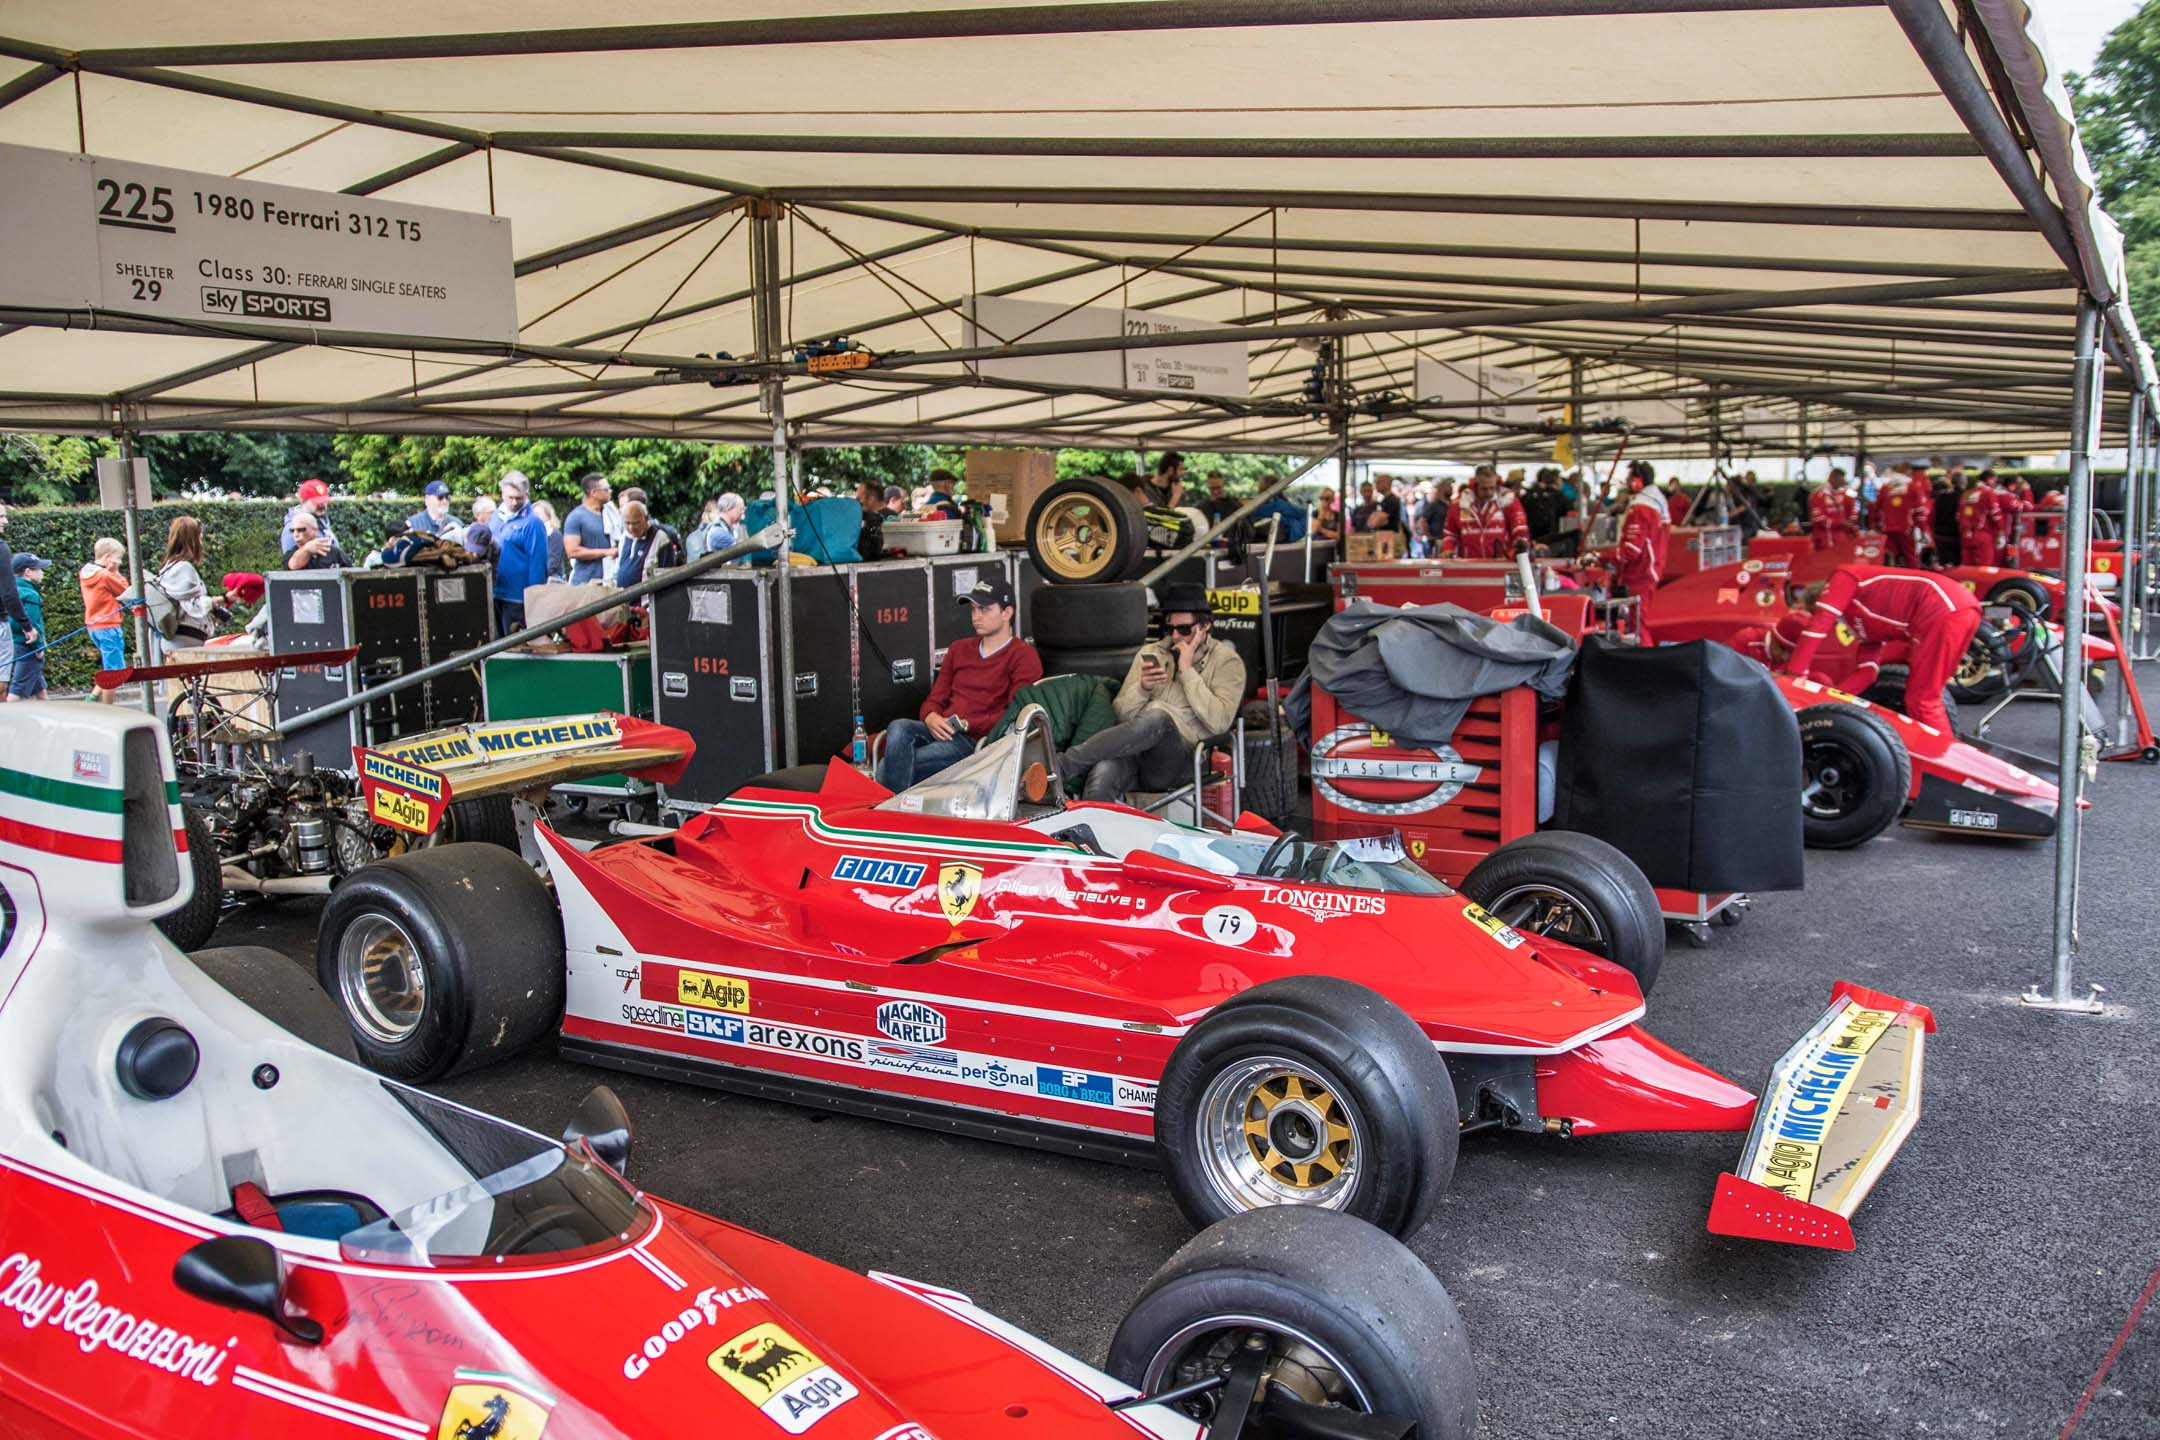 A little Canadiana, tucked in among the Italian section. The F1 car in-frame is one of Gilles Villeneuve's racing machines, and seems to fizz with the diminutive French-Canadian's energy.